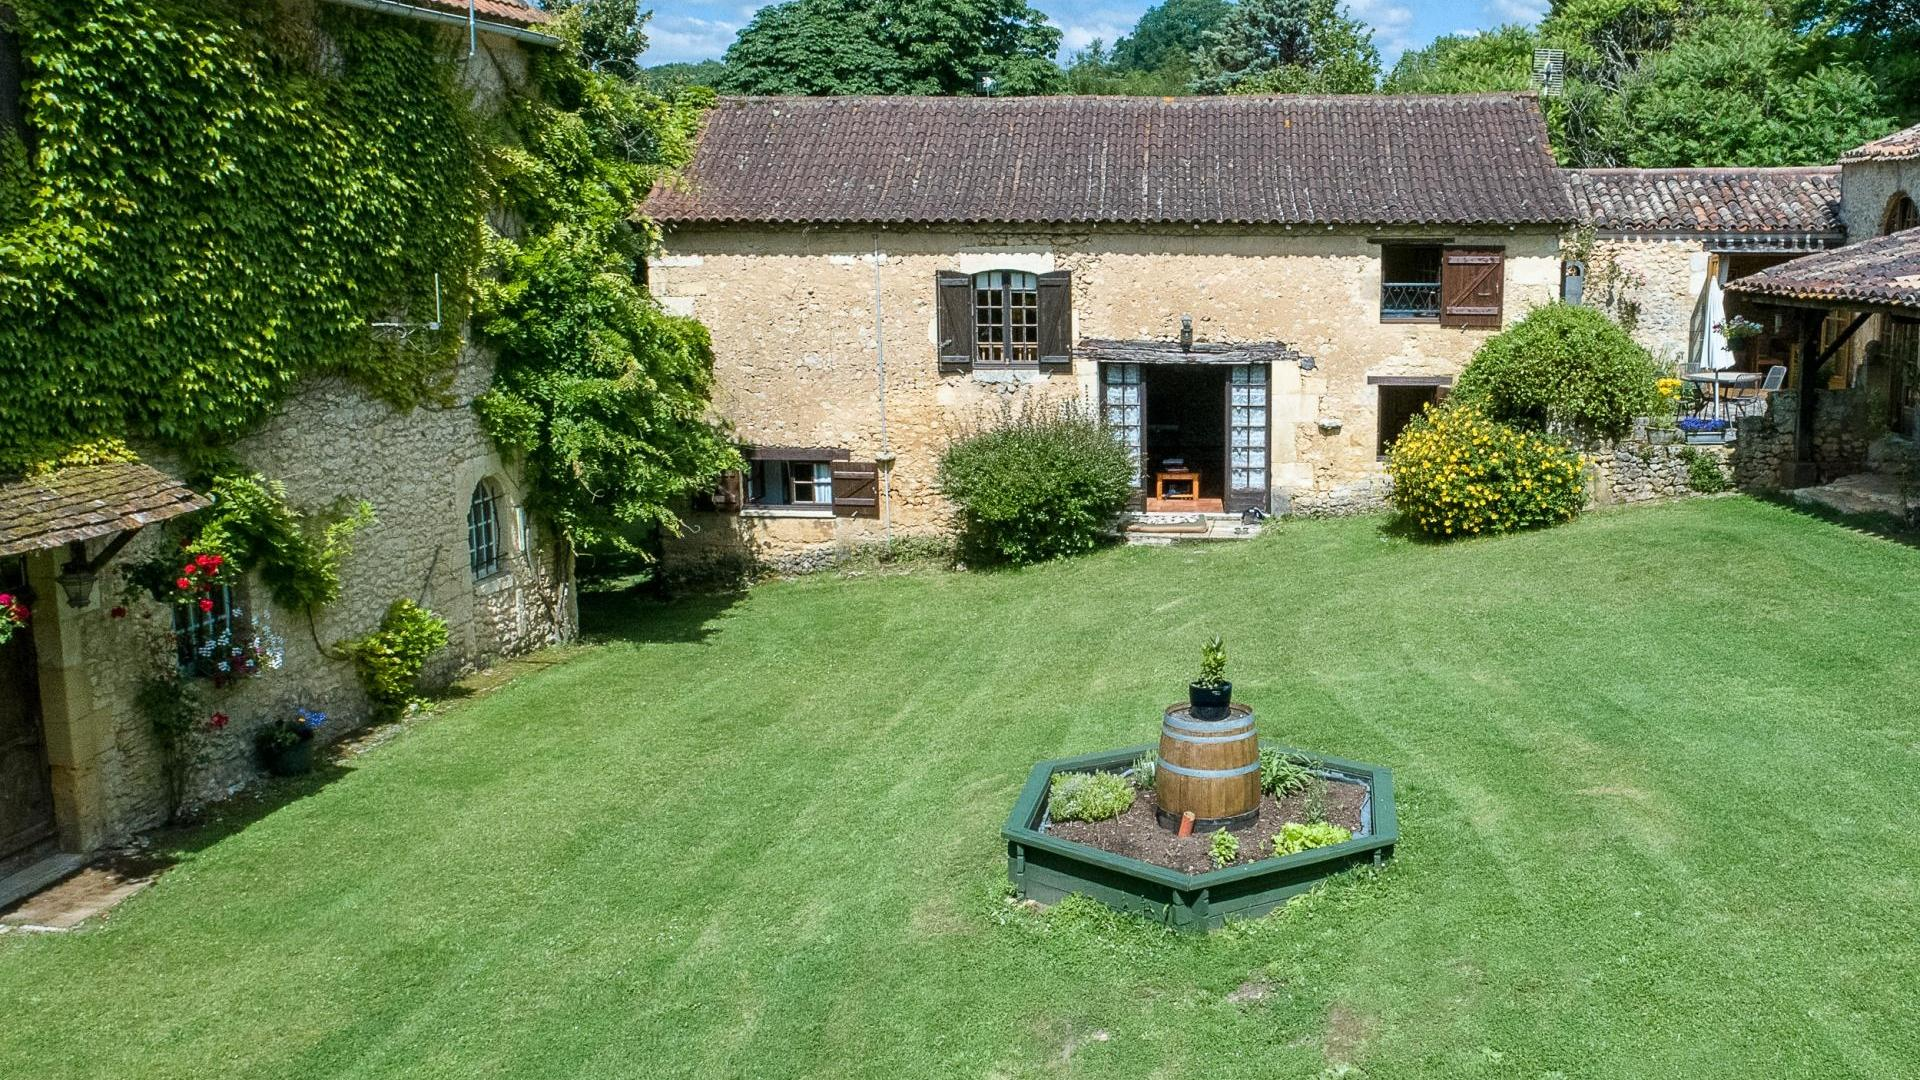 4 Bedroom Cottage/shared facilities in Aquitaine, France